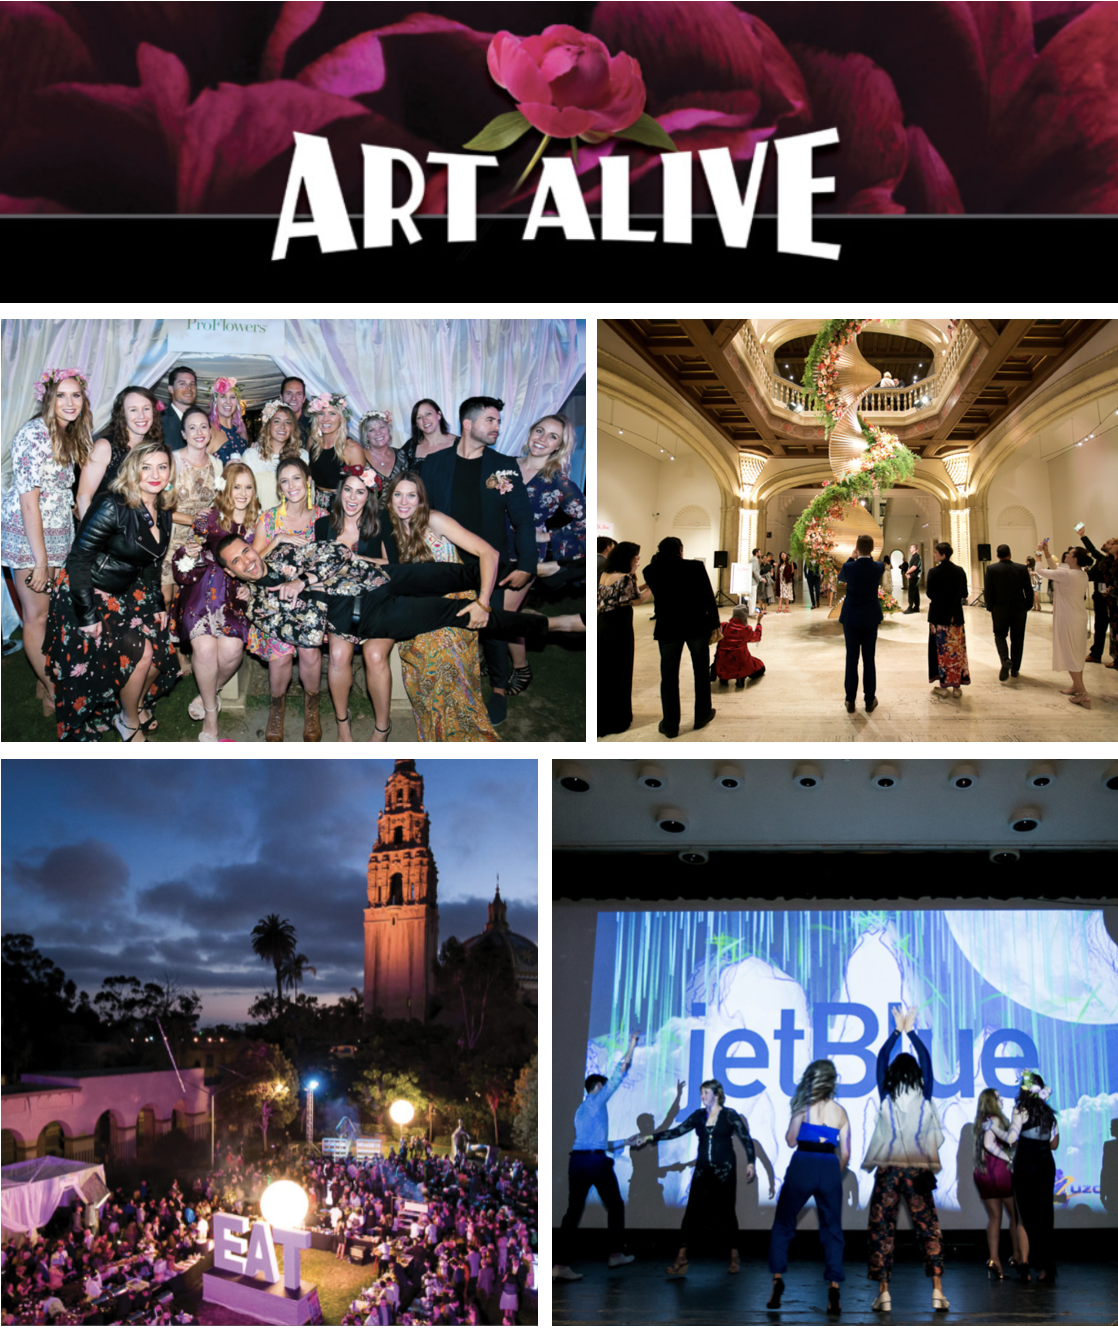 Don't Miss Art Alive 2019 This April 11-14!